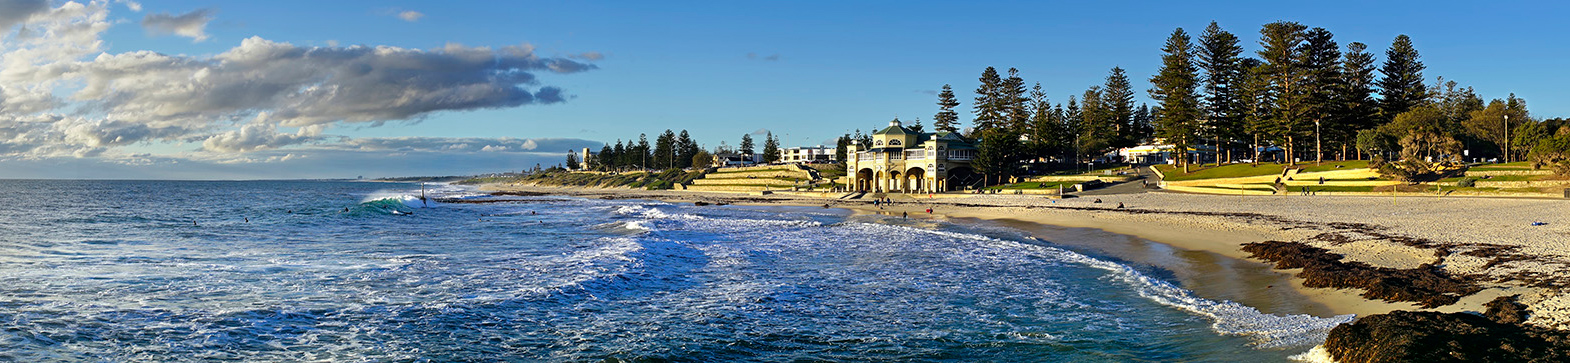 Jason Mazur - 'Winter Swell, Cottesloe Beach 006'